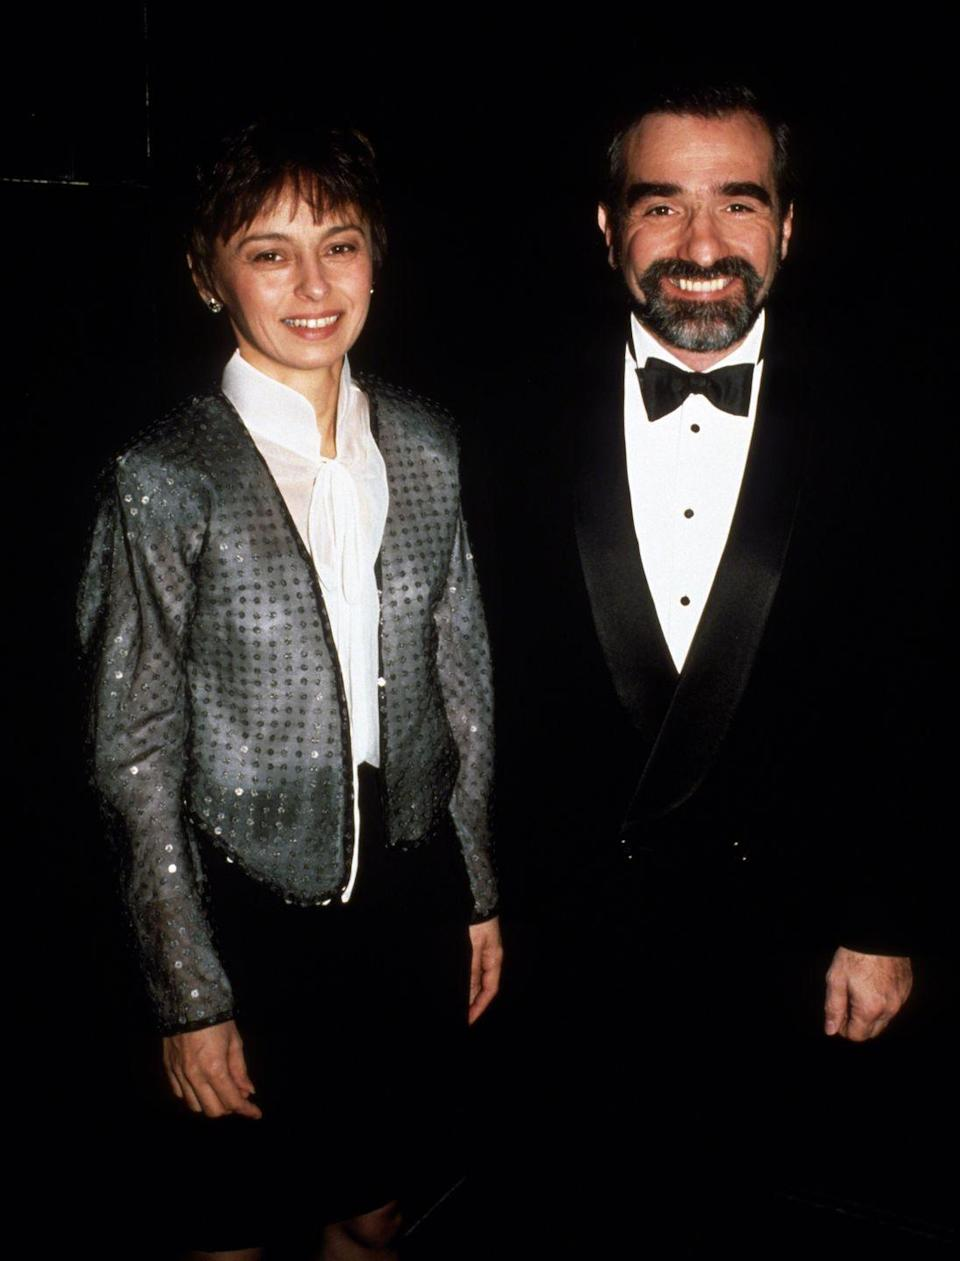 """<p>The <em>Goodfellas</em> and <em>Wolf of Wall Street</em> director Martin Scorcese has been married <a href=""""https://www.distractify.com/p/celebrities-multiple-marriages"""" rel=""""nofollow noopener"""" target=""""_blank"""" data-ylk=""""slk:five times"""" class=""""link rapid-noclick-resp"""">five times</a>. He was previously married to producer Laraine Brennan, teacher Julia Cameron, actress Isabella Rossellini, and producer Barbara de Fina. His current wife is television producer Helen Morris.<br></p>"""